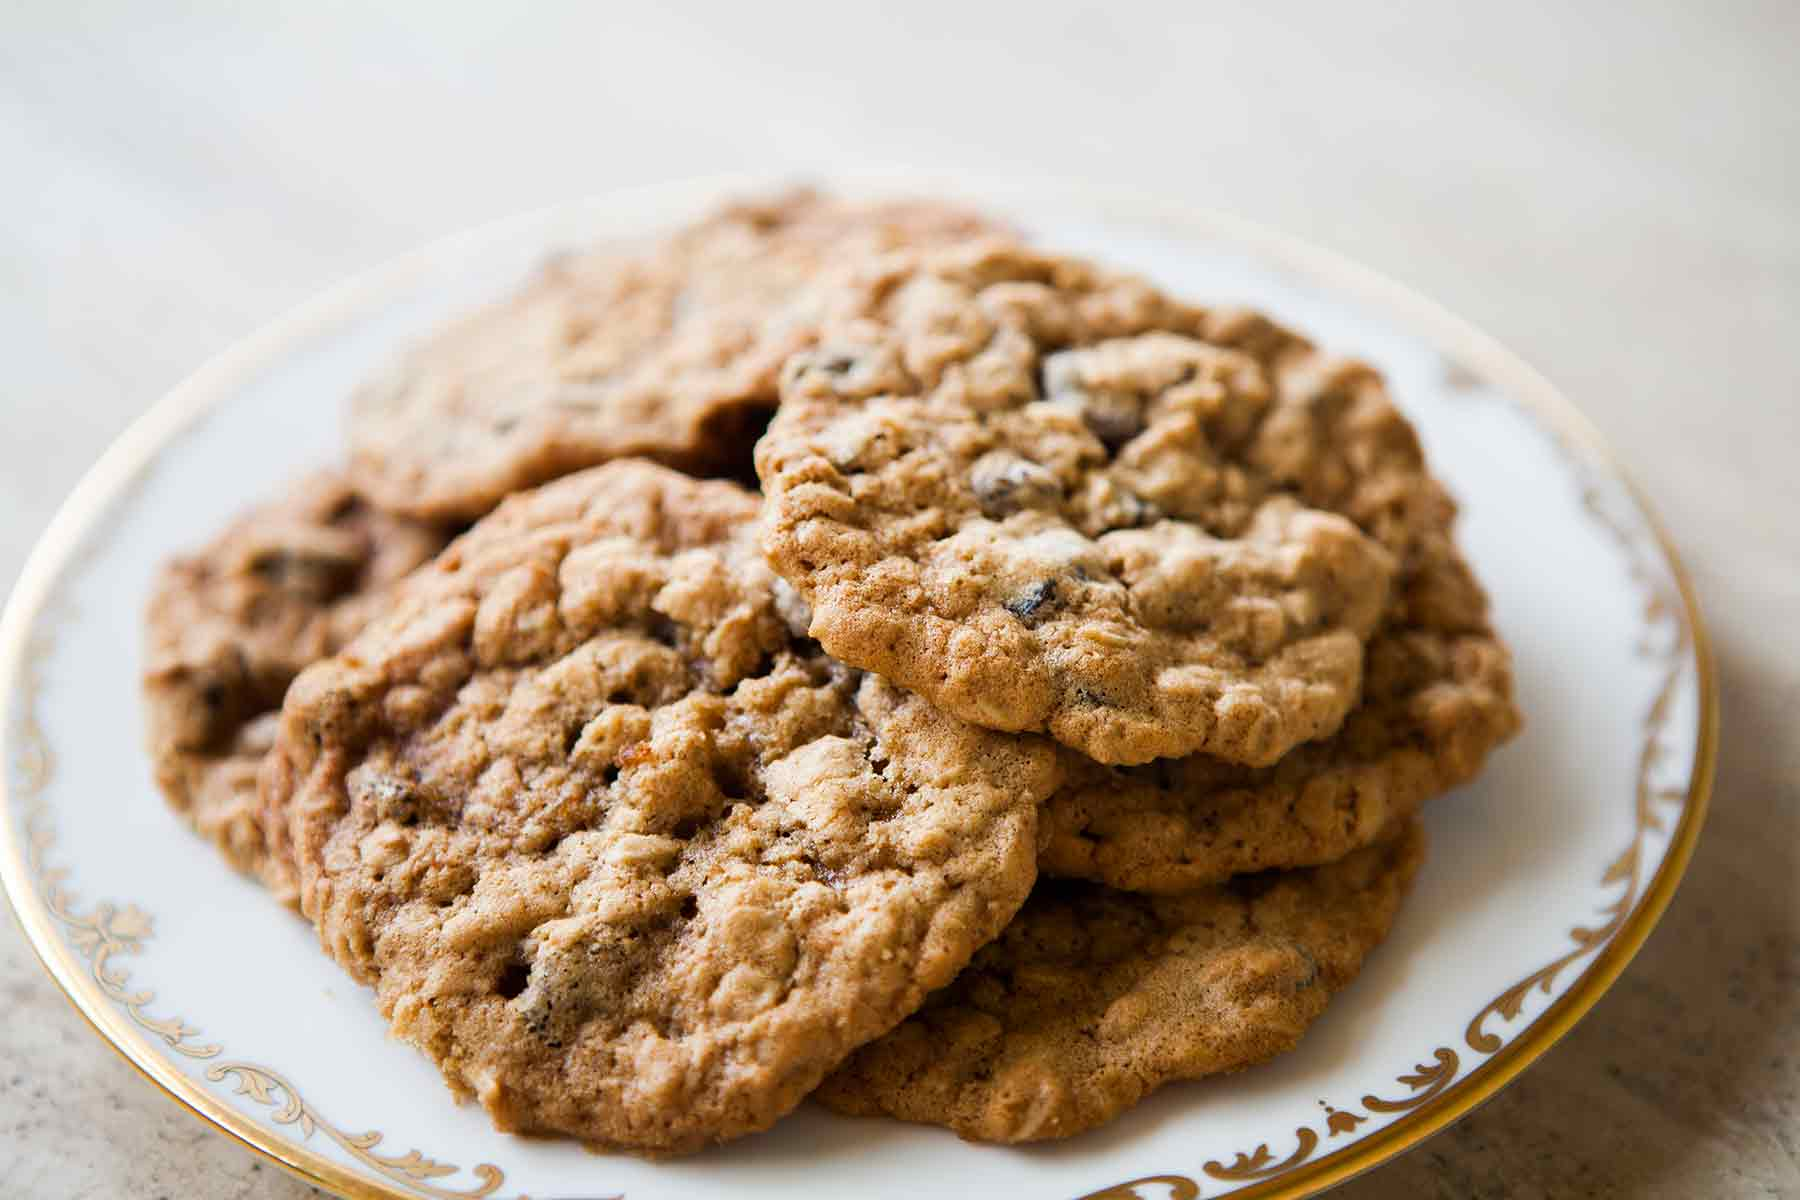 """Delightful Desserts! - These cookies make you say, """"Who needs an oven?"""" Easy and delicious, you can go the raisin route, or if looking for an even more decadent treat, go for chocolate chips! Either way, they're yummmmmmy!"""